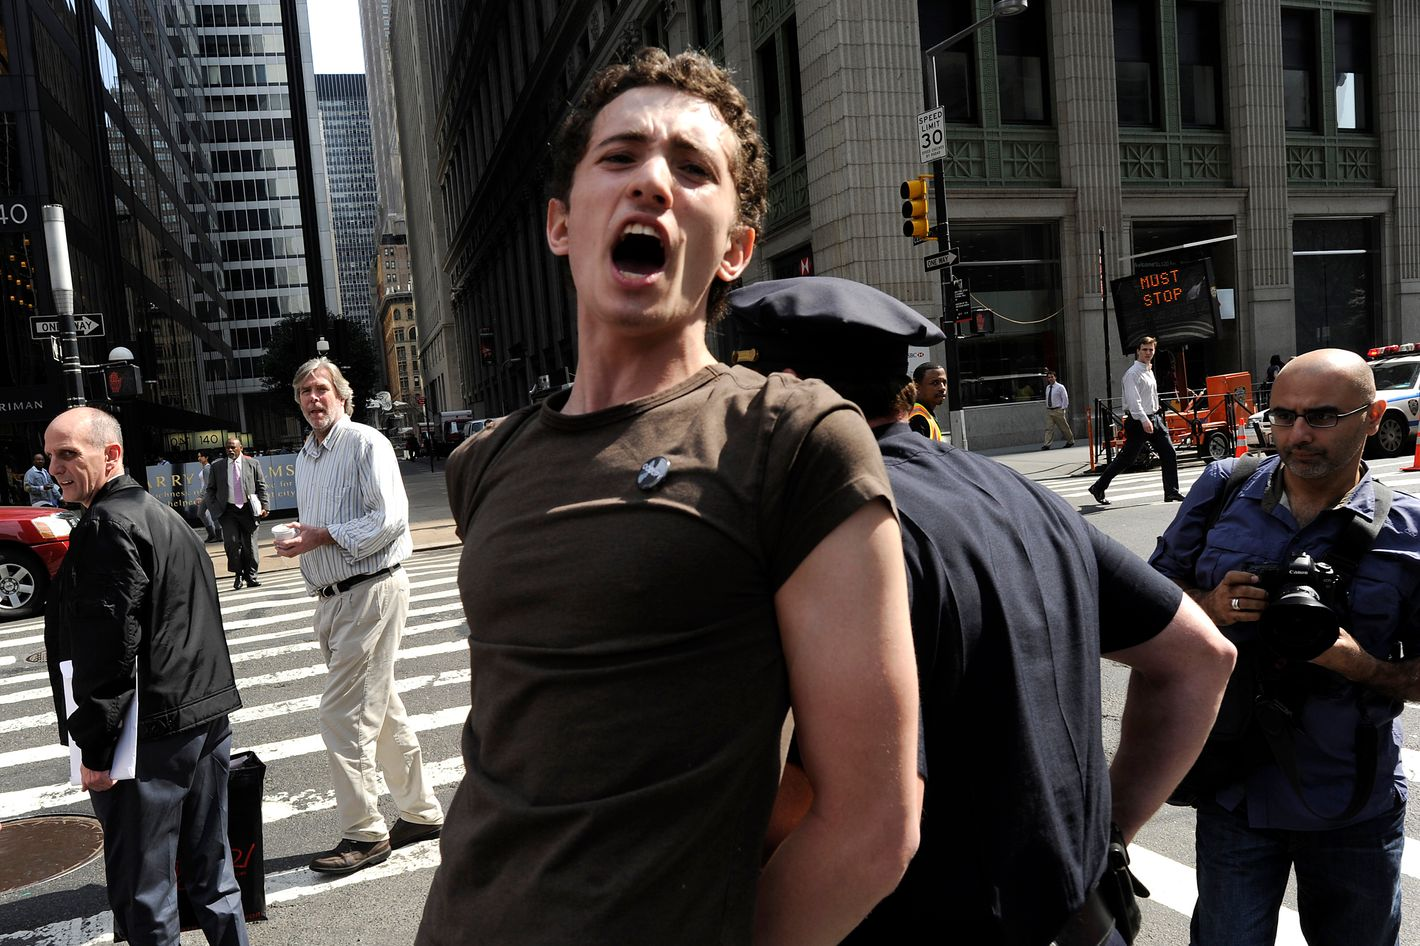 A demonstrator with 'Occupy Wall Street' is arrested during a protest at Zuccotti Park in New York on March 23, 2012 .